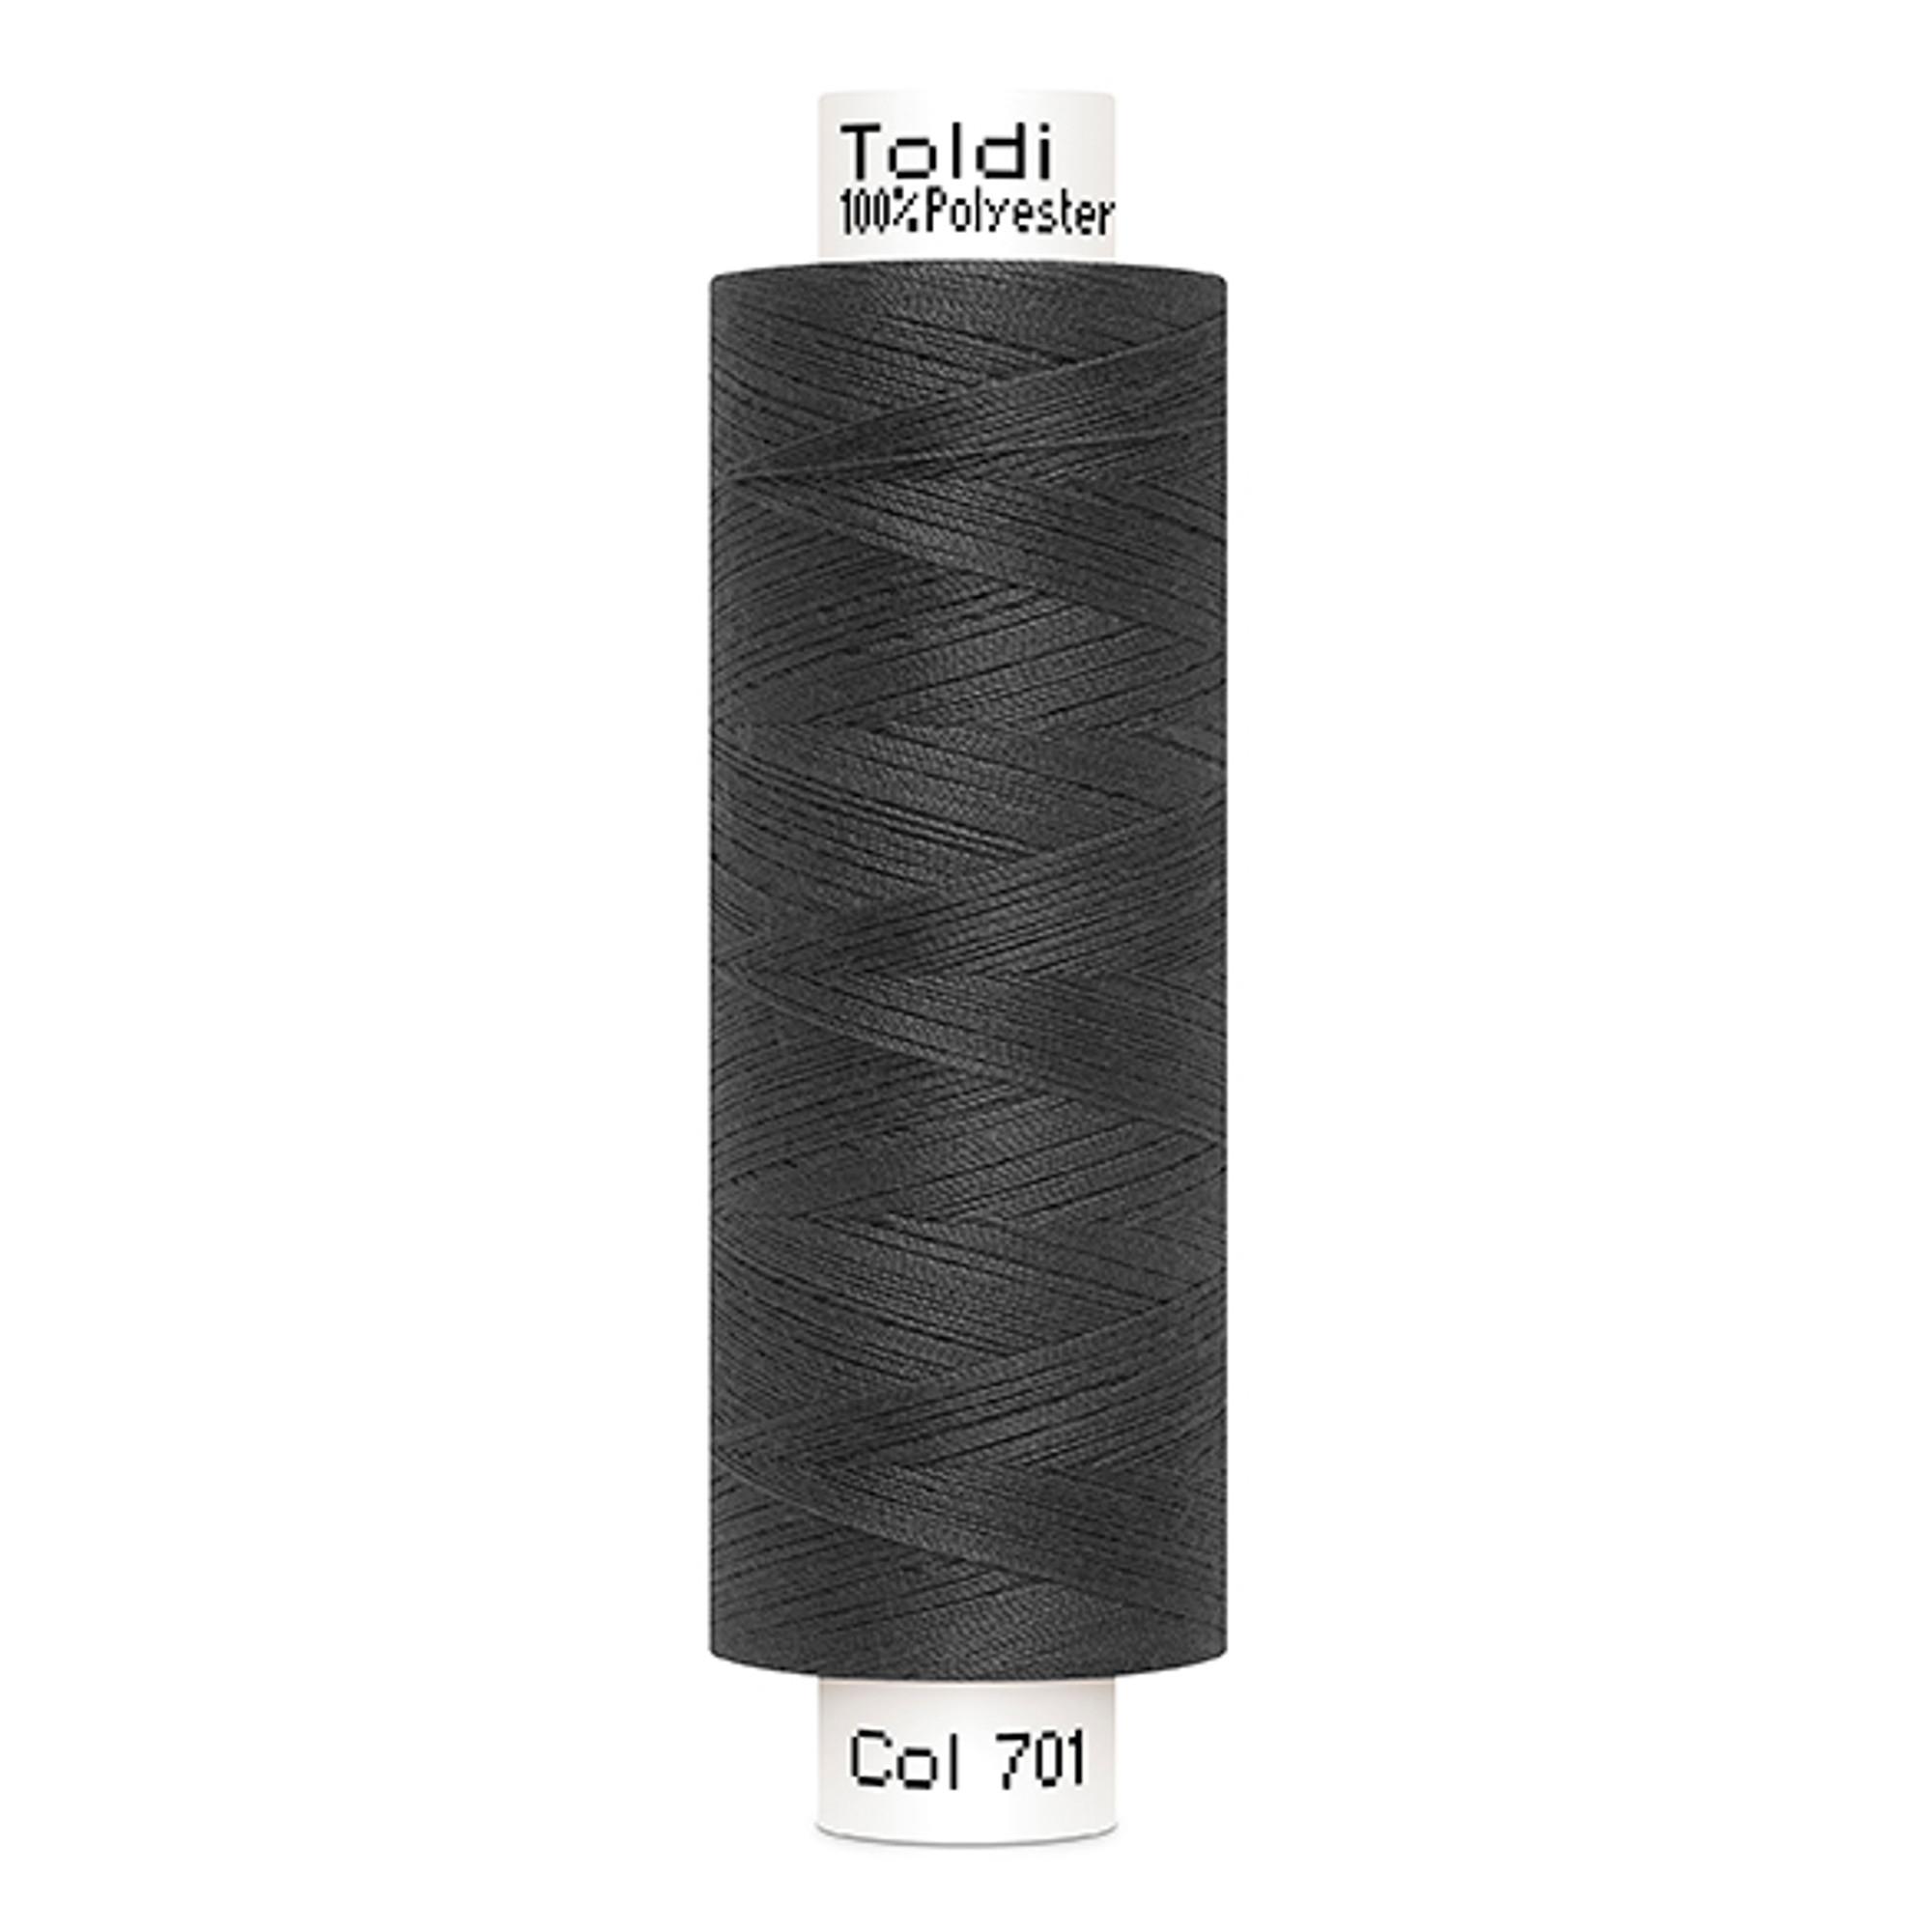 Gütermann Toldi Sewing Thread, 500 m dark grey | 707589-701 | grau